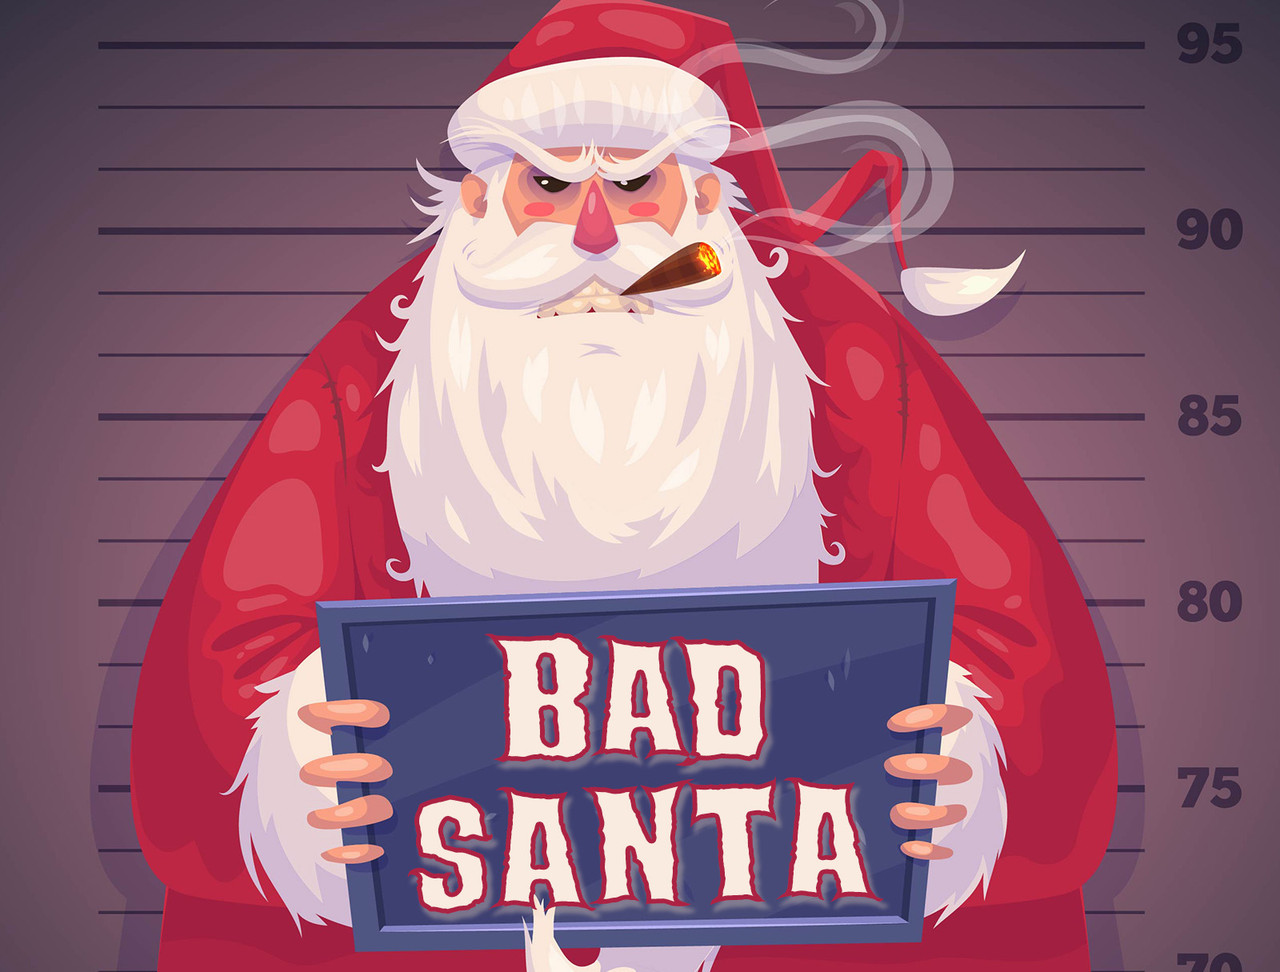 Bad Santa | A murder mystery game